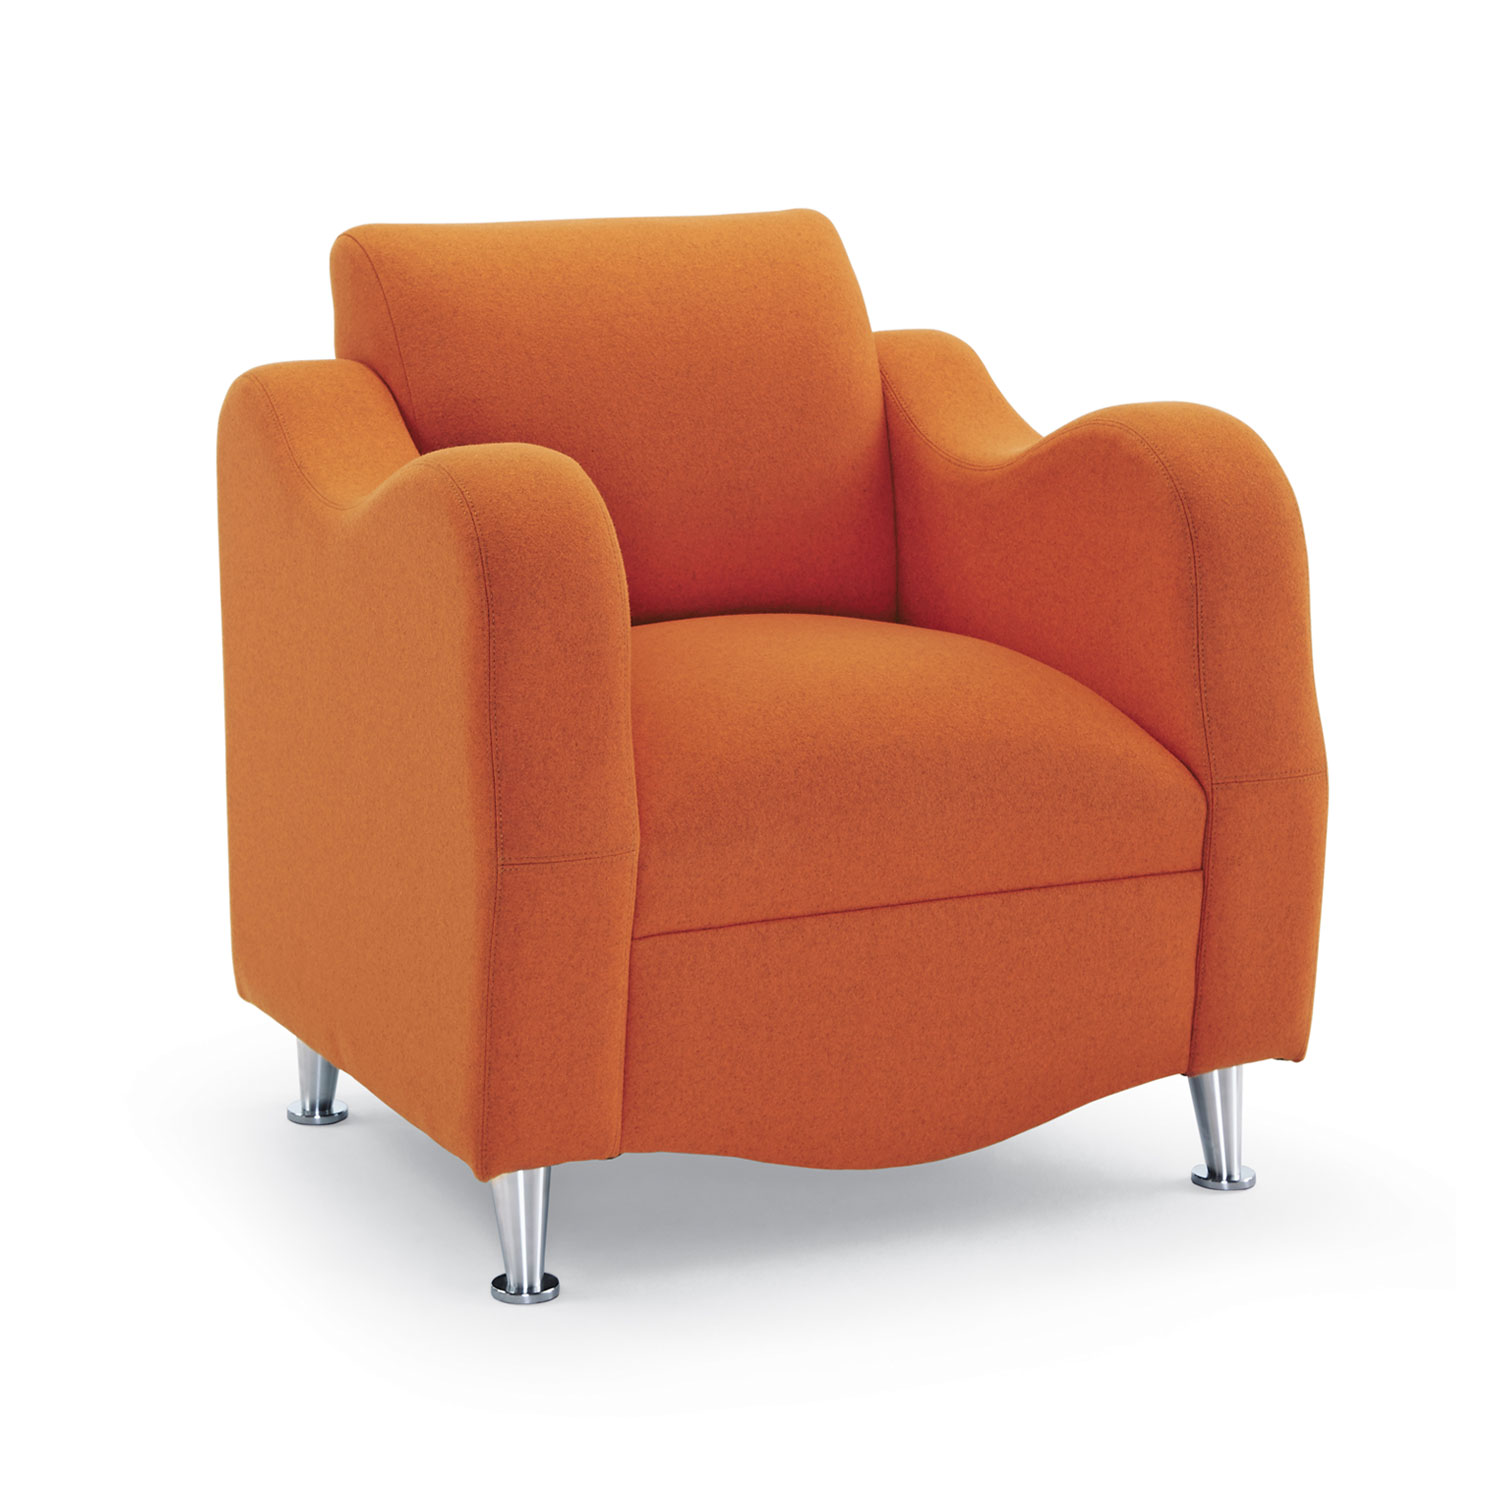 Lounge And Reception Seating From HPFi   High Point Furniture Industries